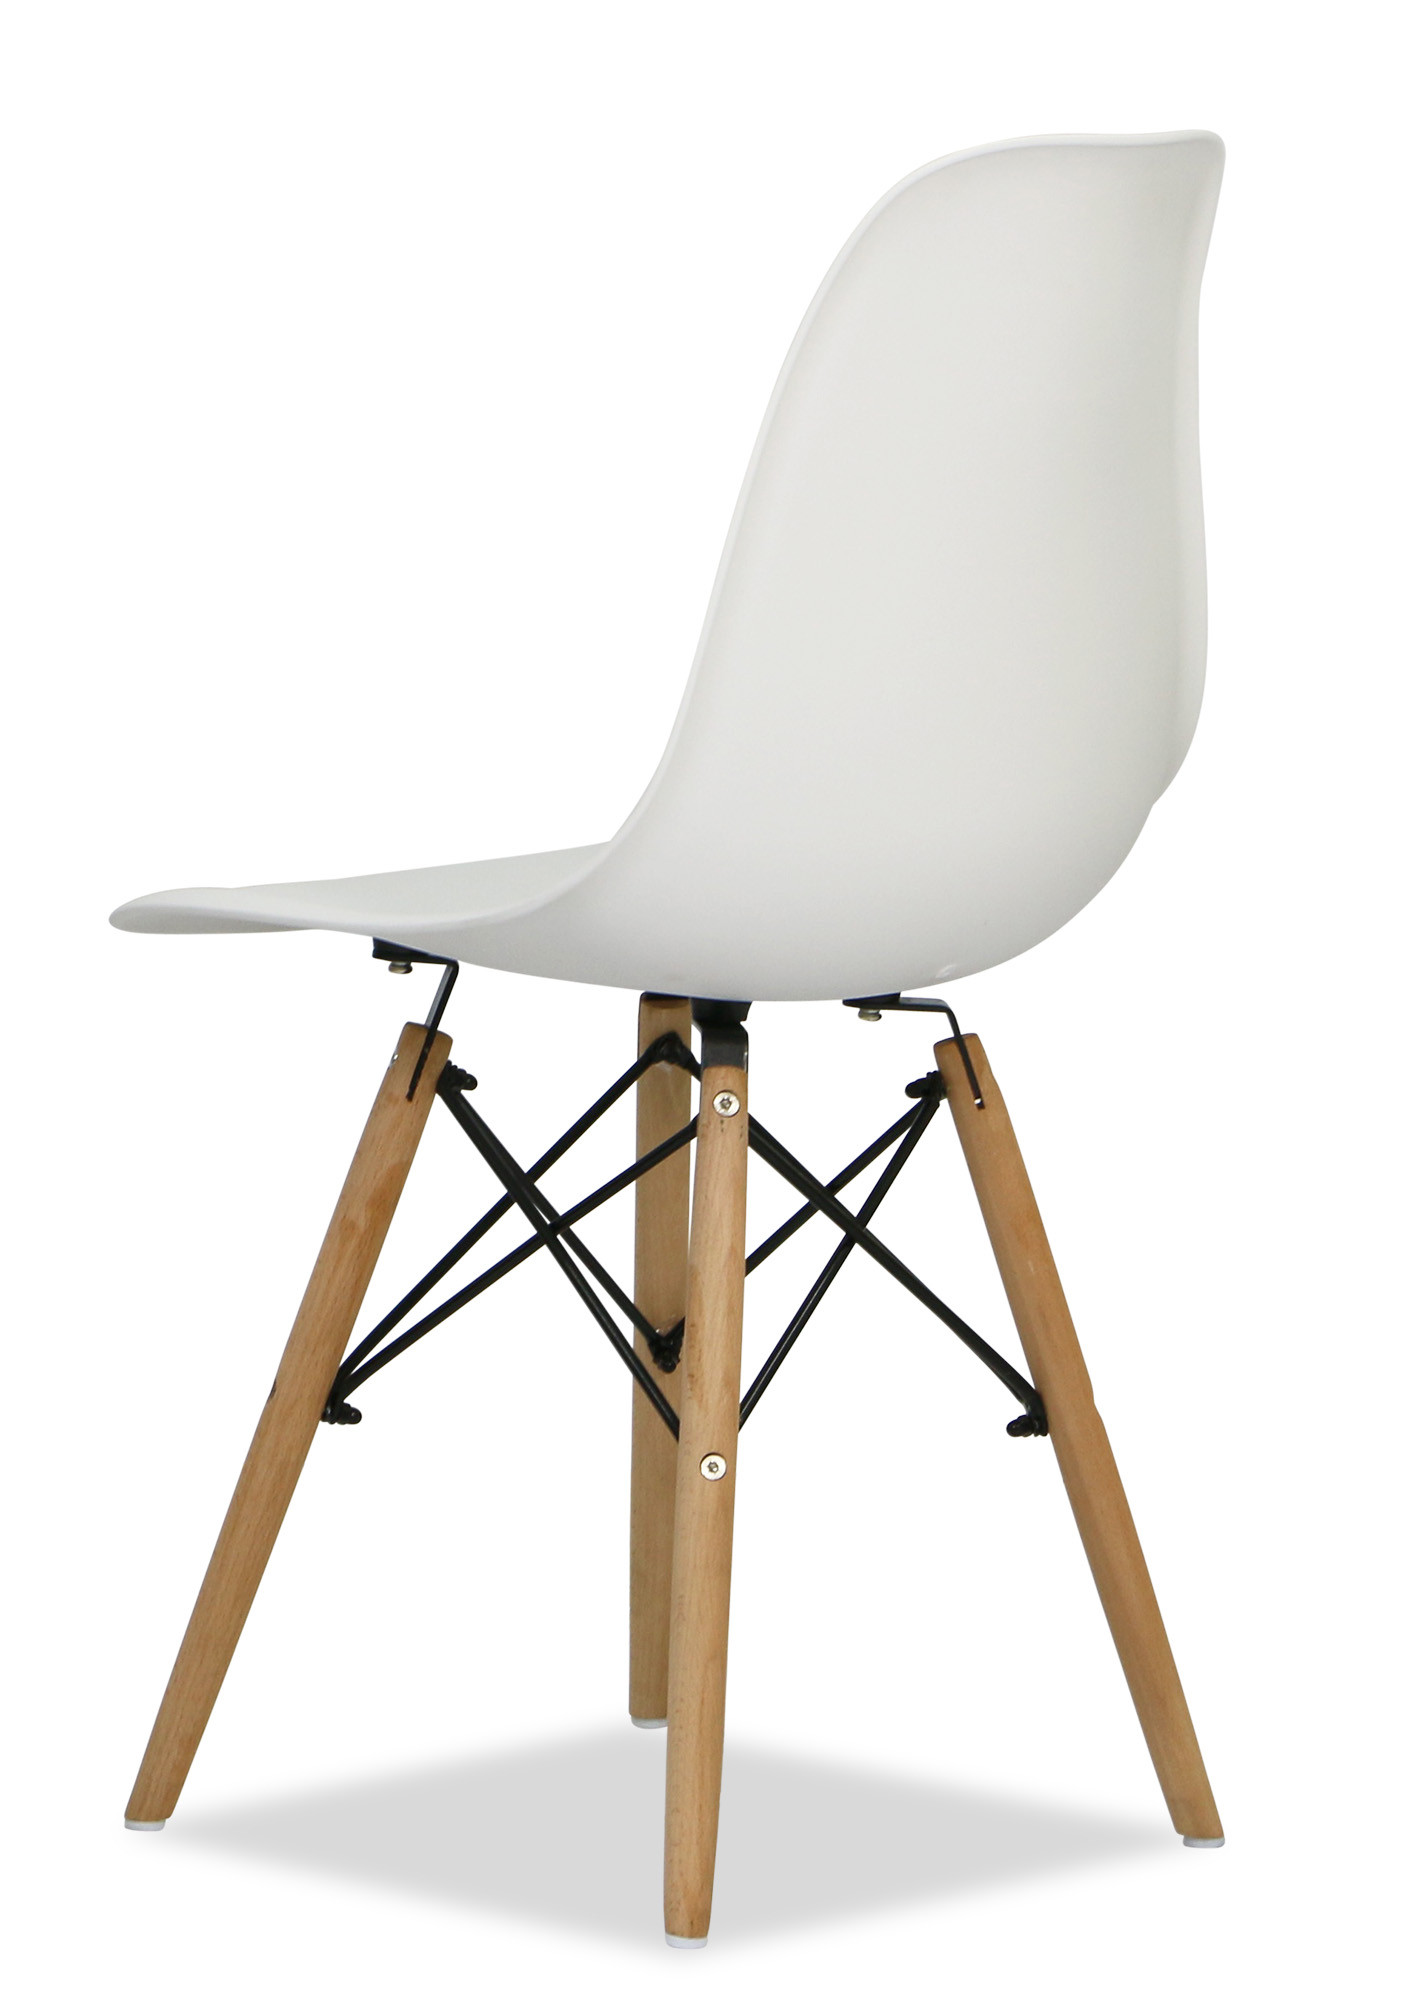 Eames white replica designer chair dining room furniture for Designer furniture replica malaysia